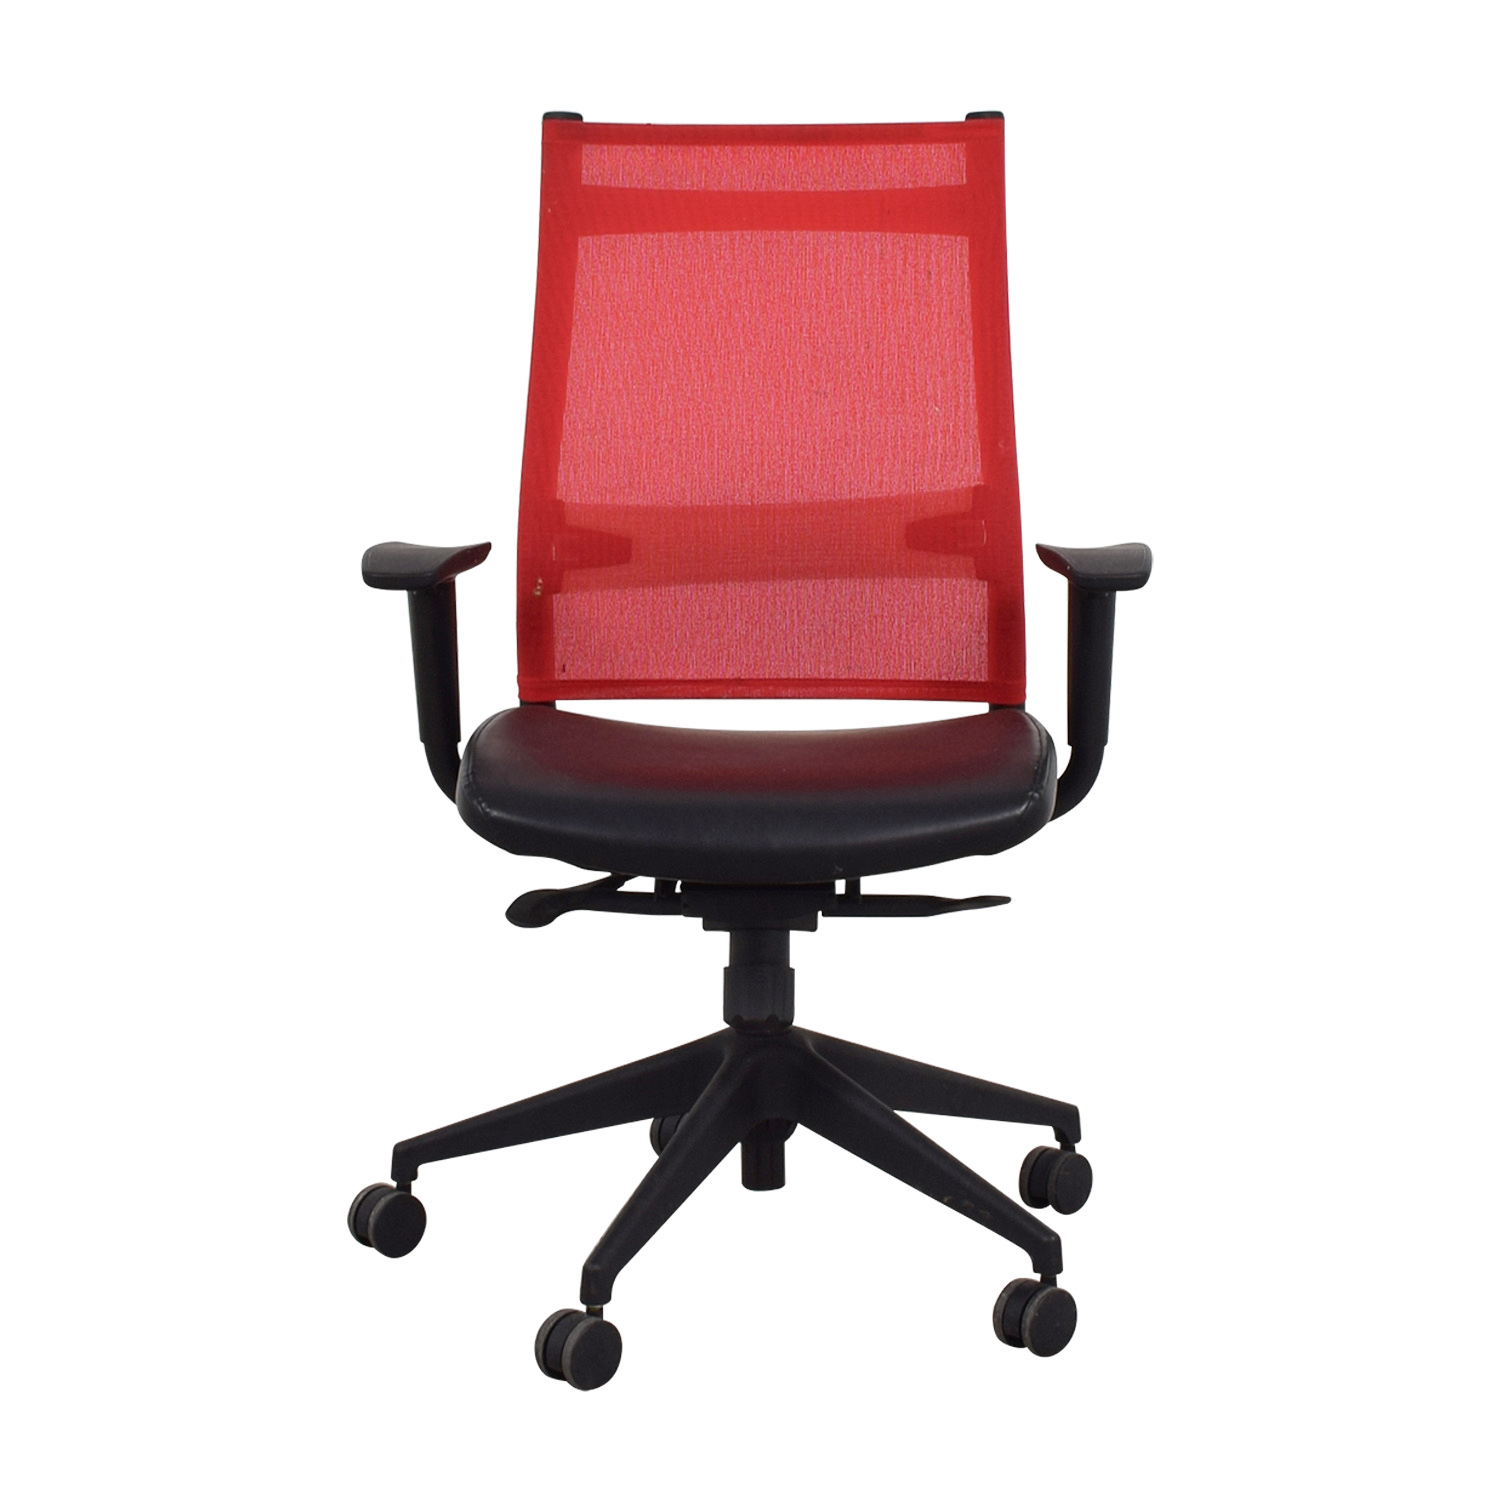 SitOnIt SitOnIt Red Office Chair nj